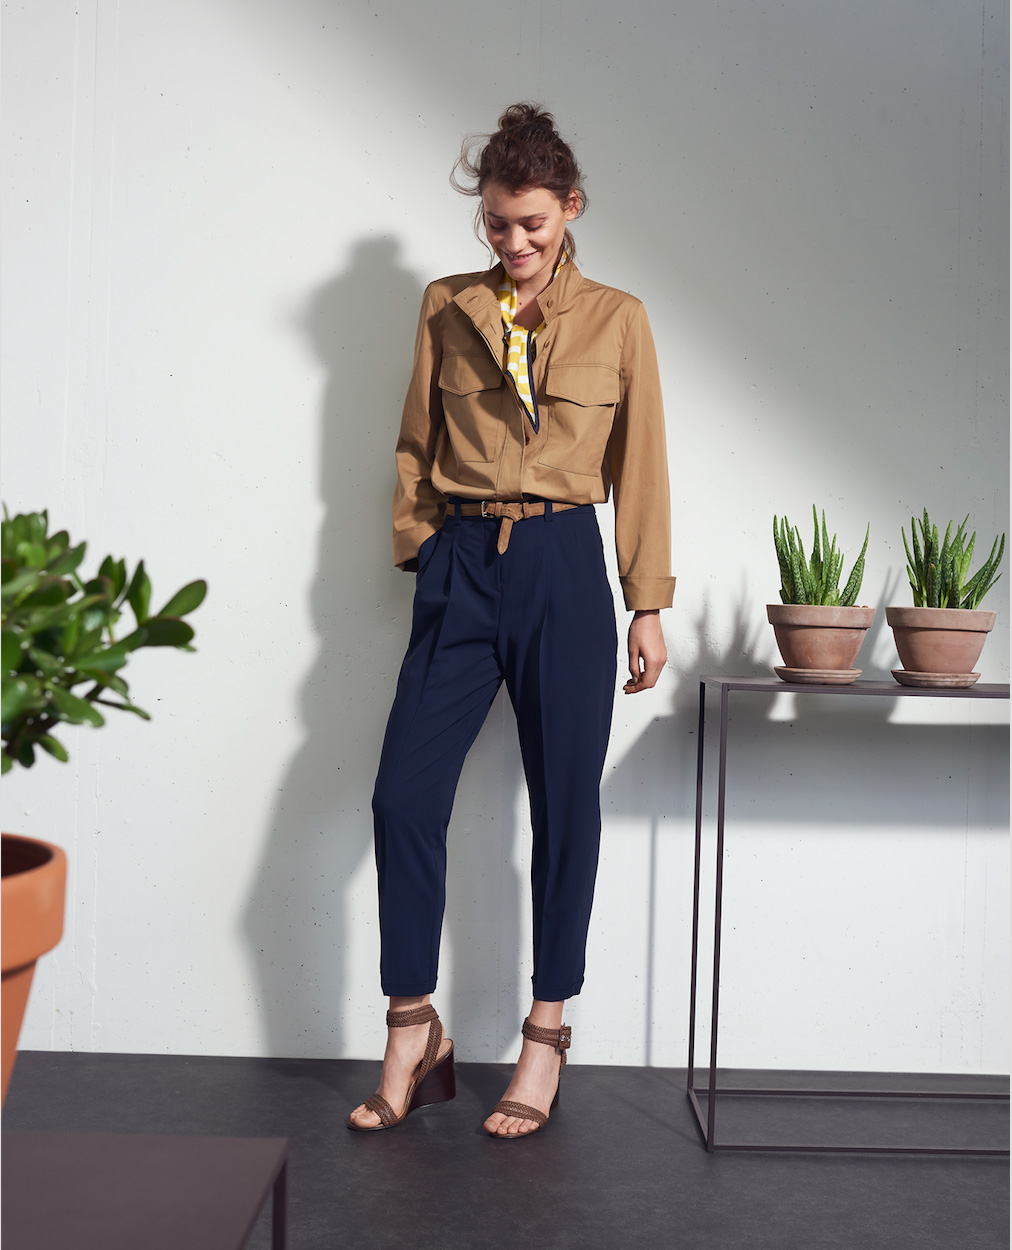 Brown Jacket Blue Pants Woman Fashion Plants